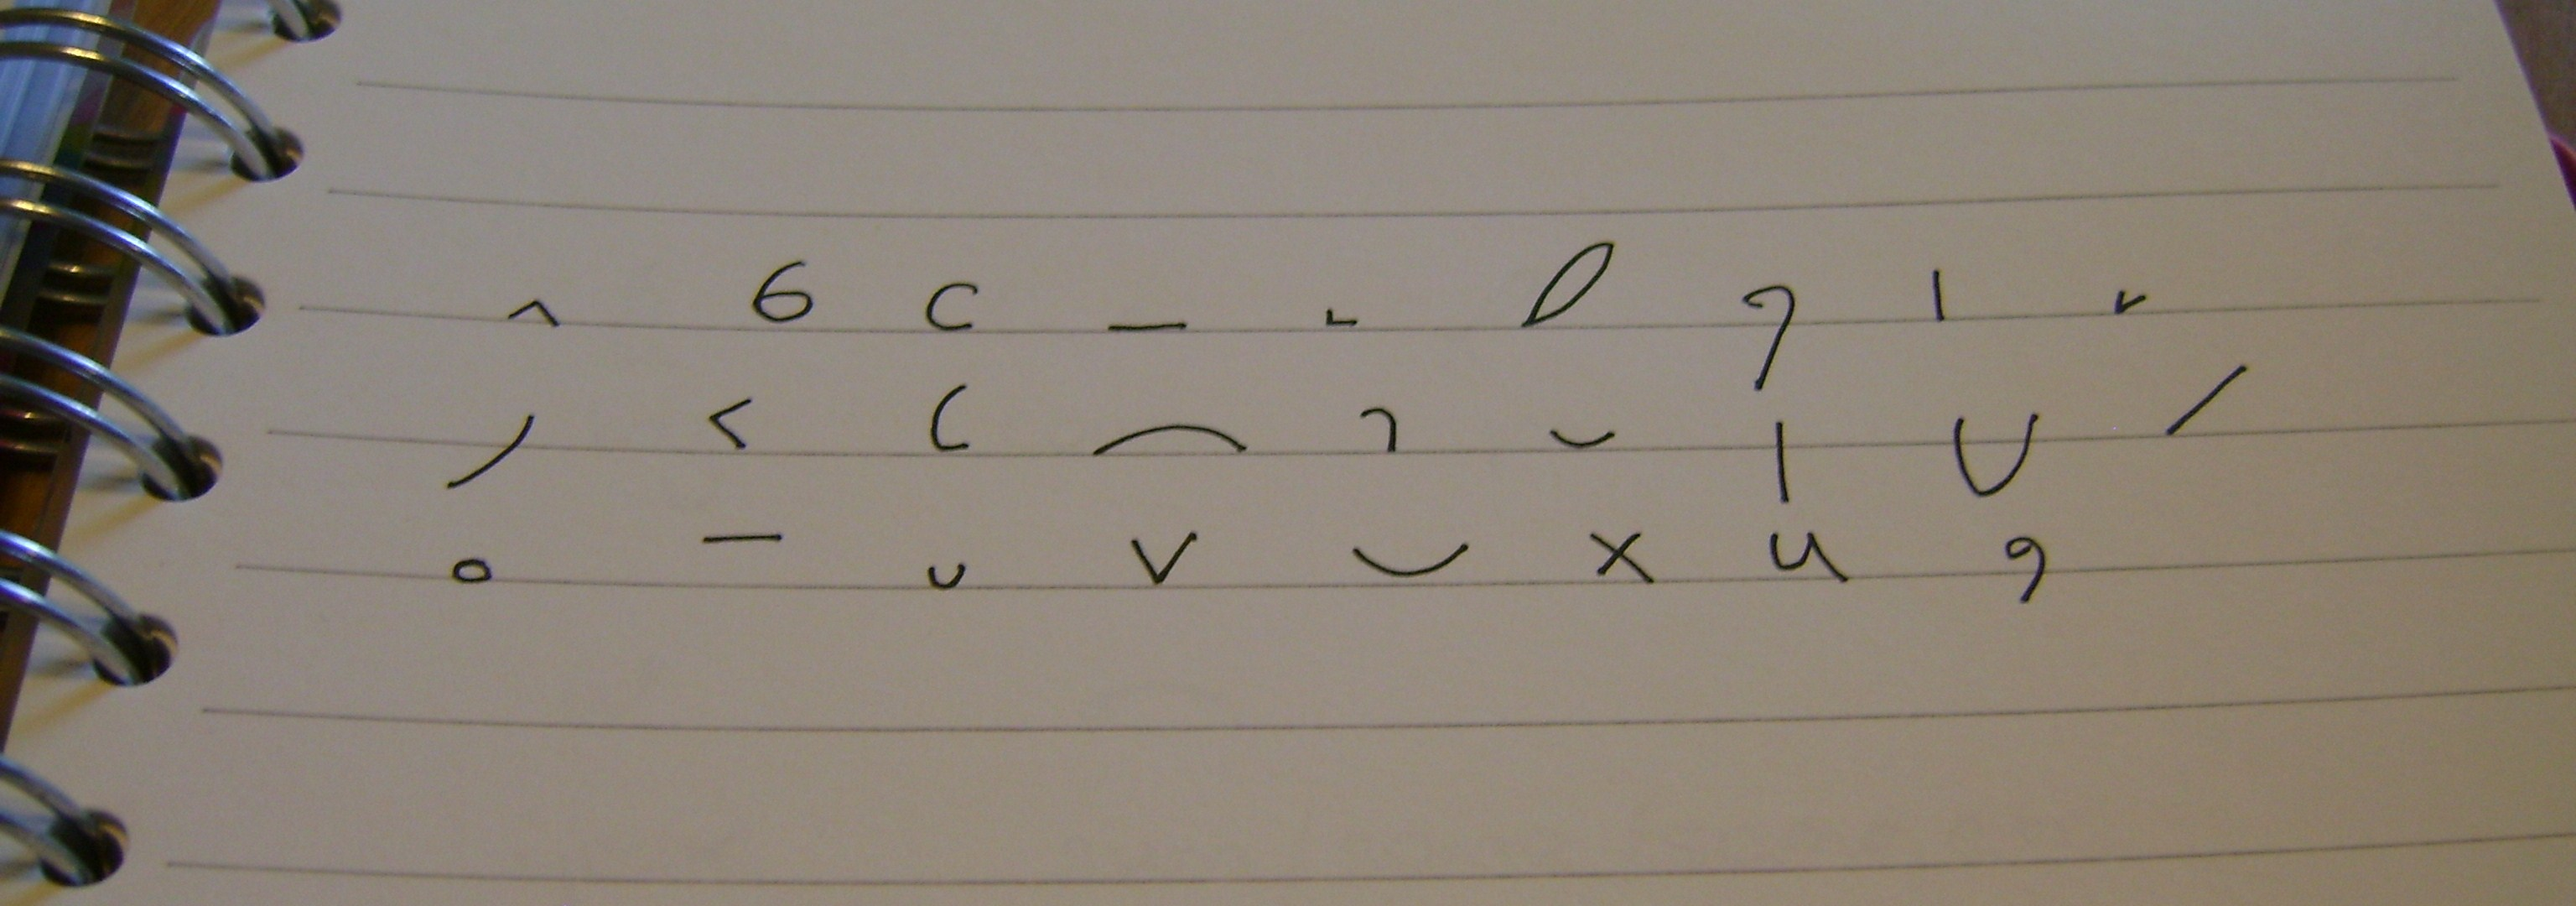 Shorthand Alphabet